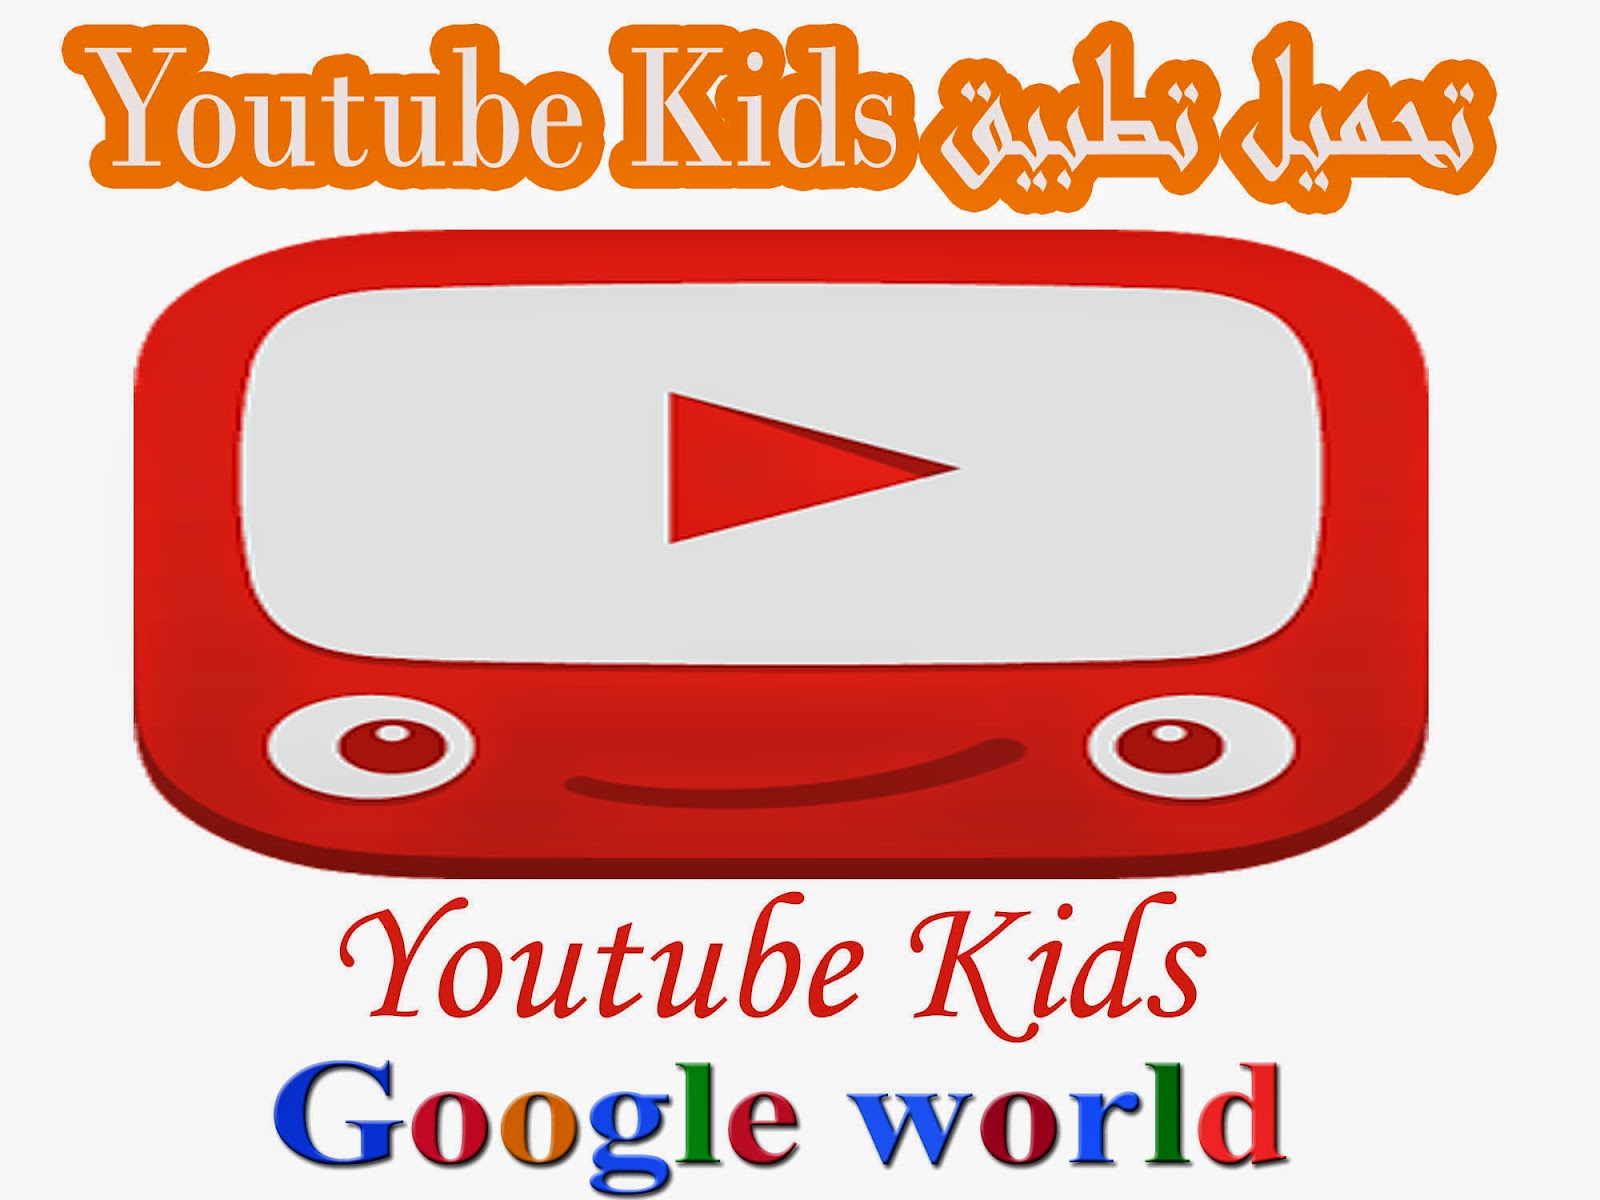 downloaf Youtube Kids